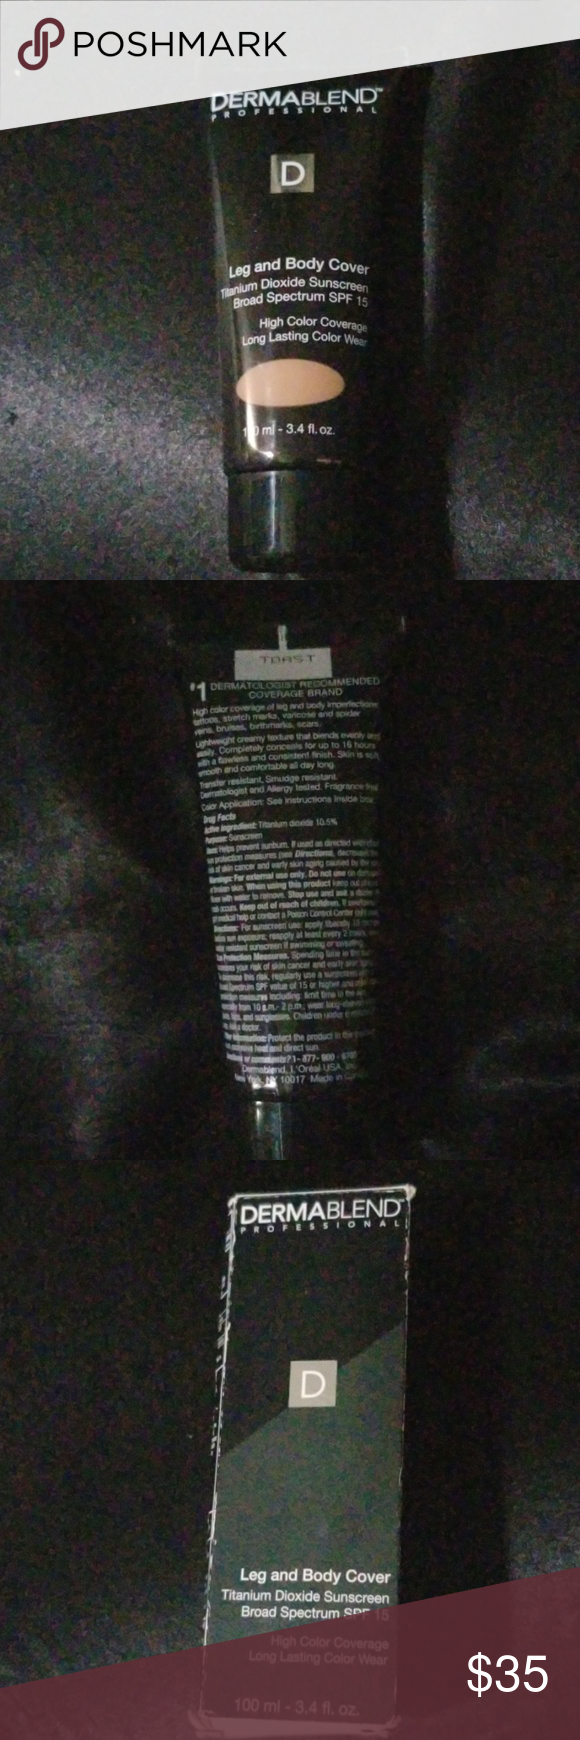 Dermablend Leg and Body Cover Dermablend Leg and Body